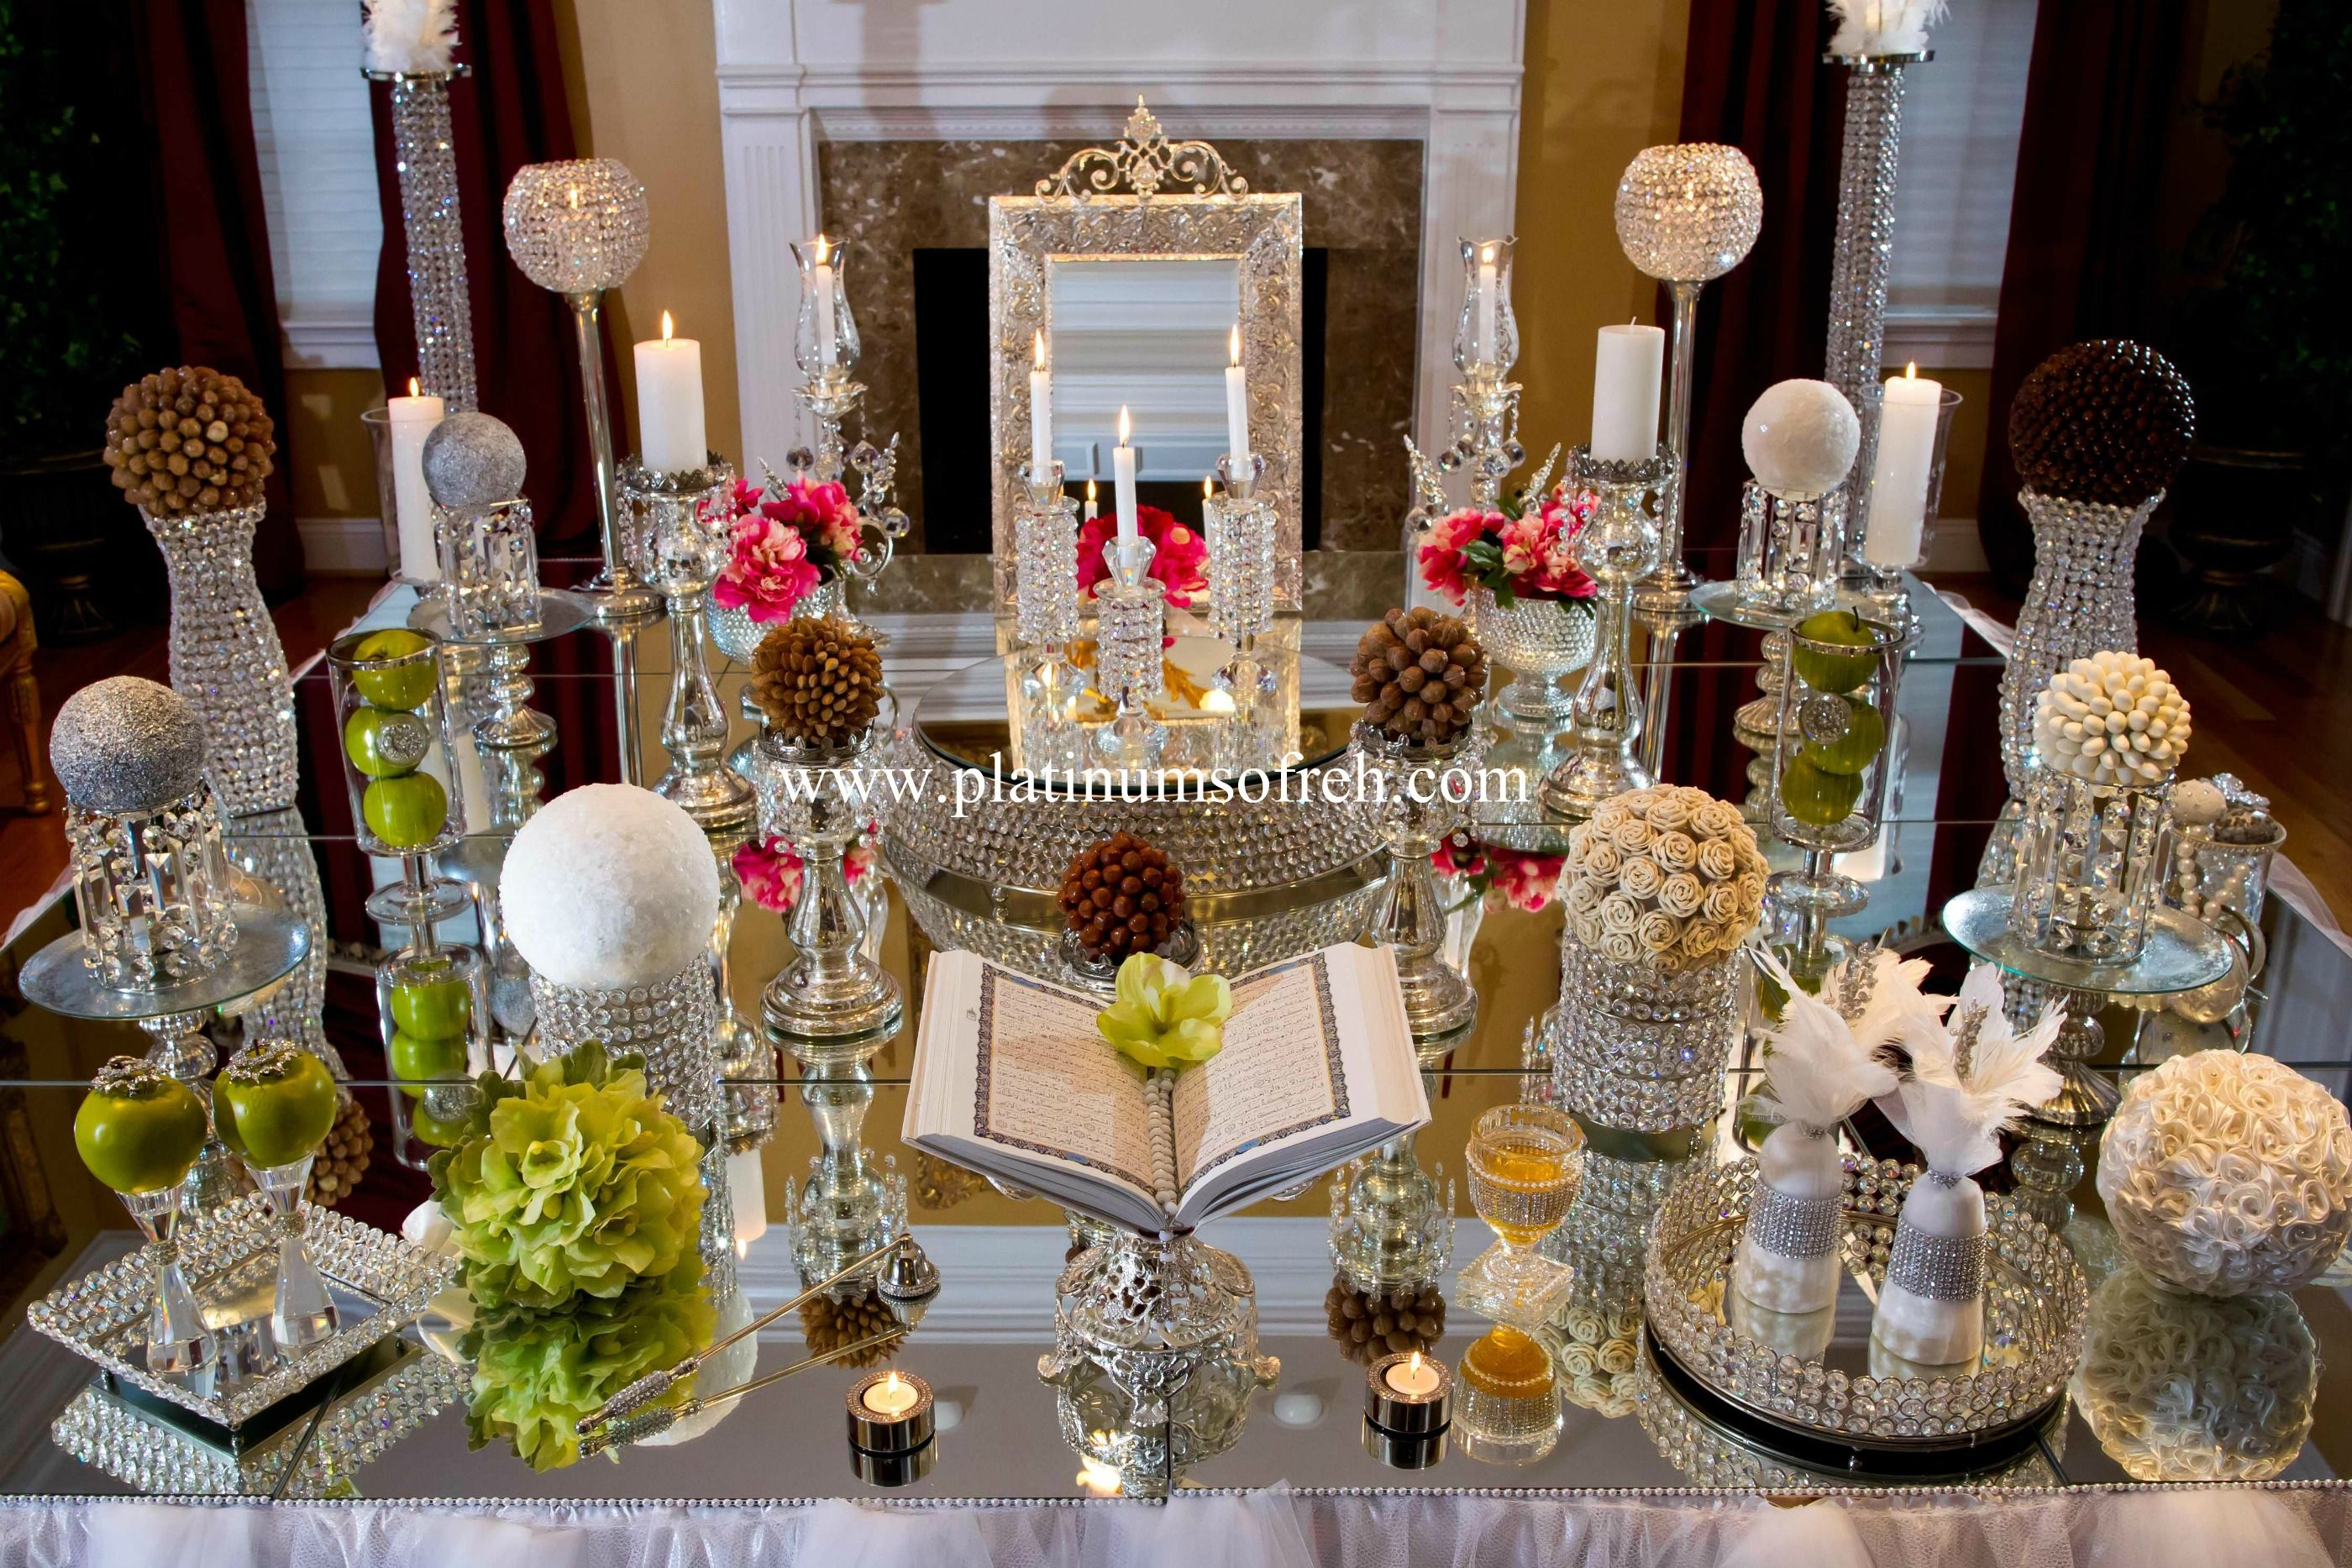 Sofreh aghd event planning sofreh aghd languages for Persian wedding ceremony table